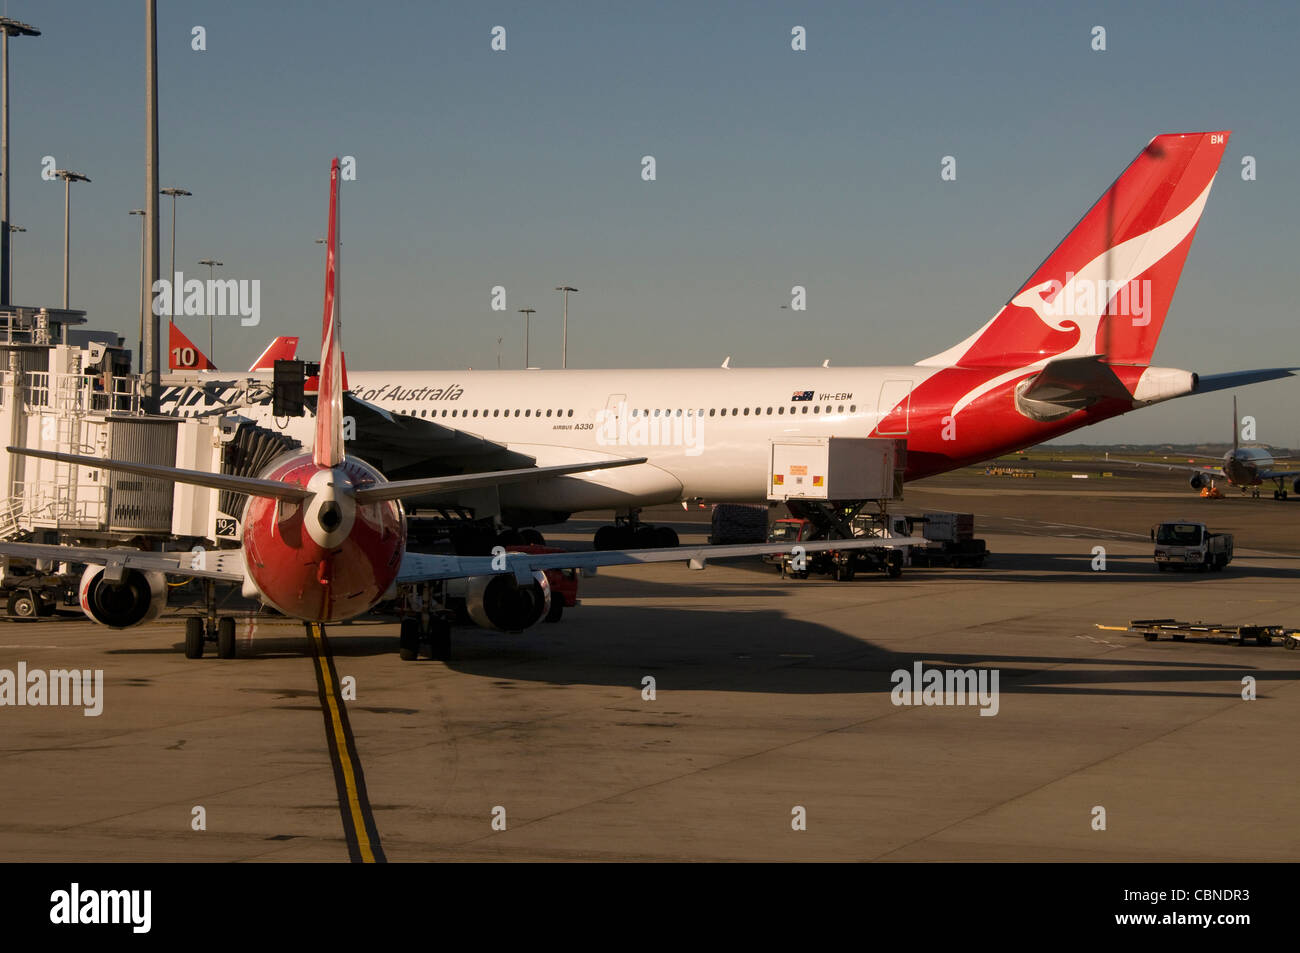 Qantas Aircraft at the domestic flight terminal at Sydney (Kingsford Smith) airport near Sydney in New South Wales, - Stock Image